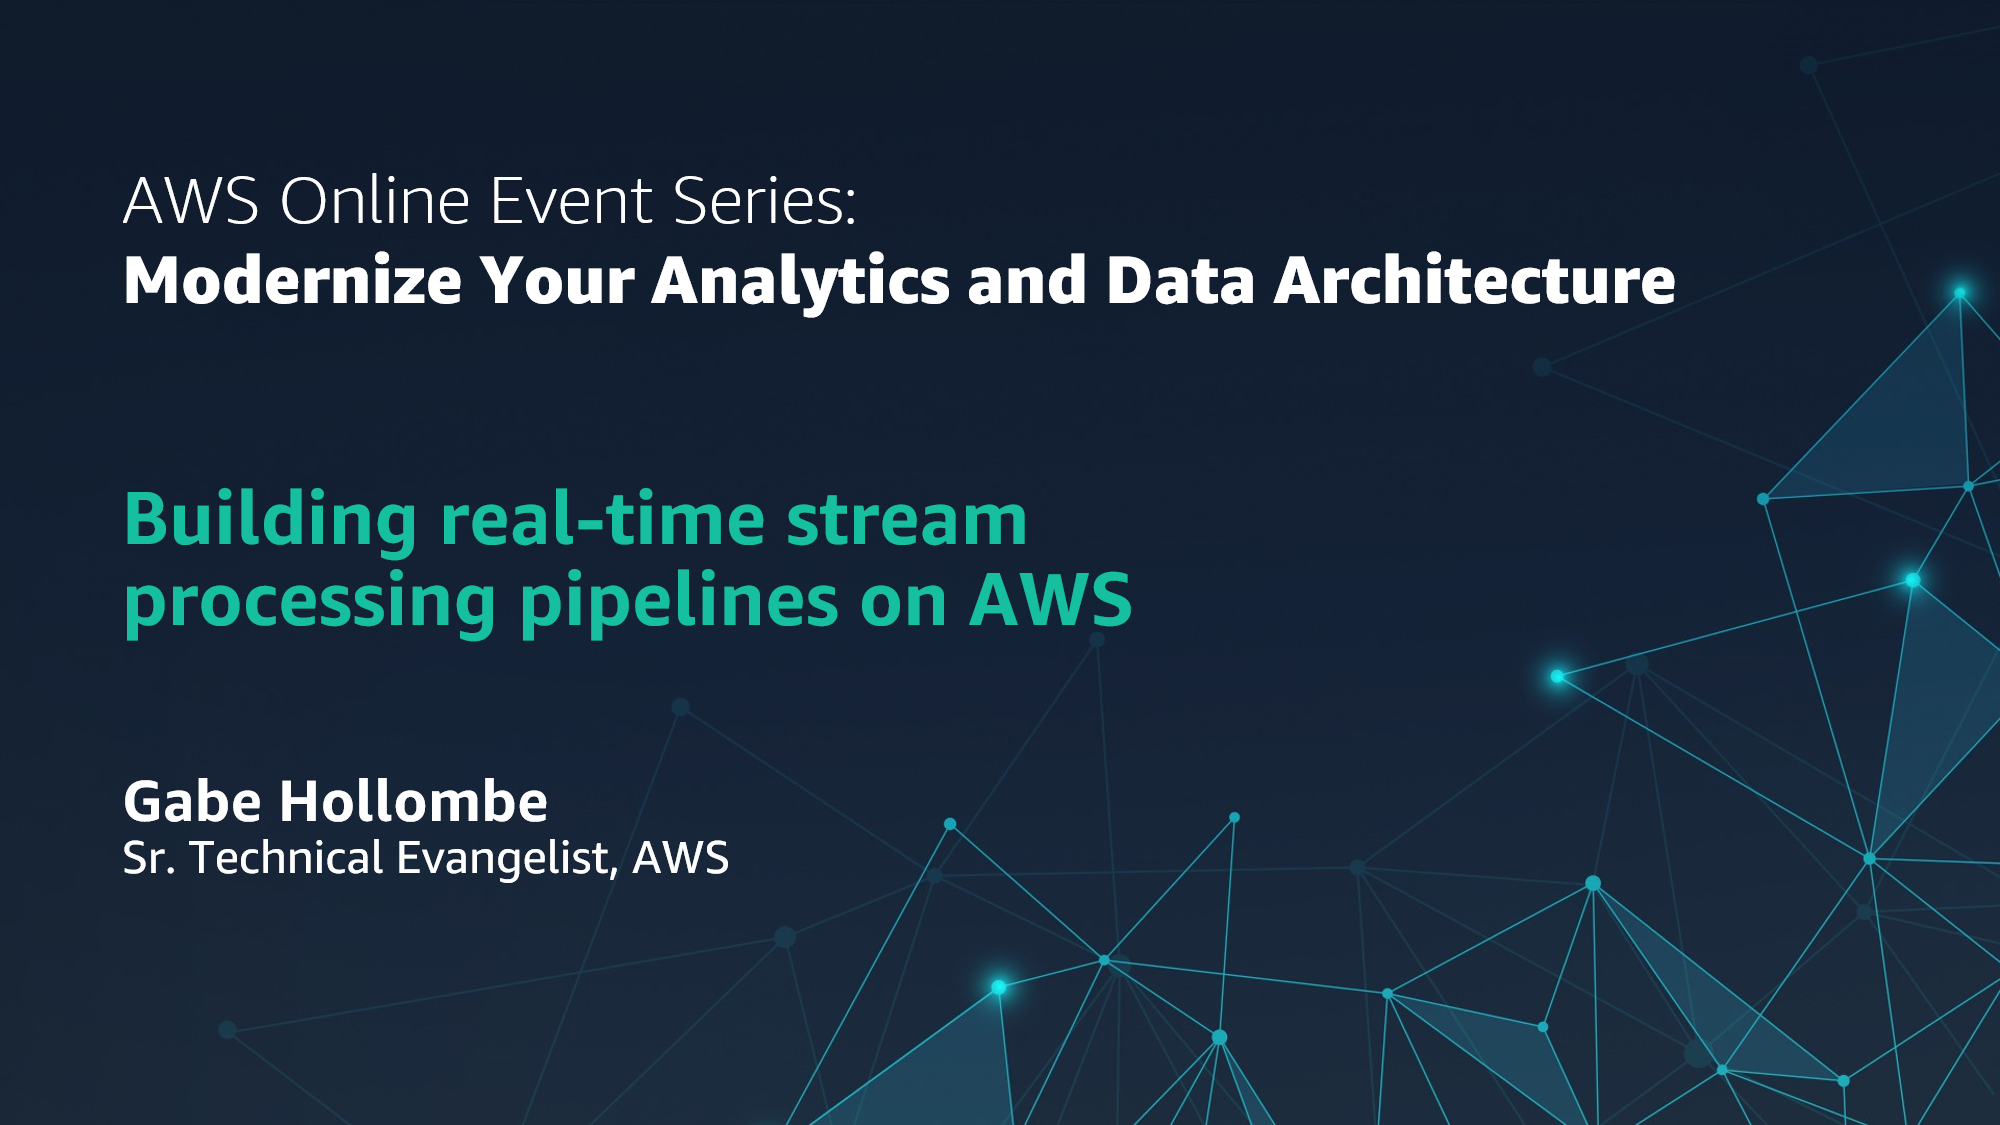 Building real-time stream processing pipelines on AWS